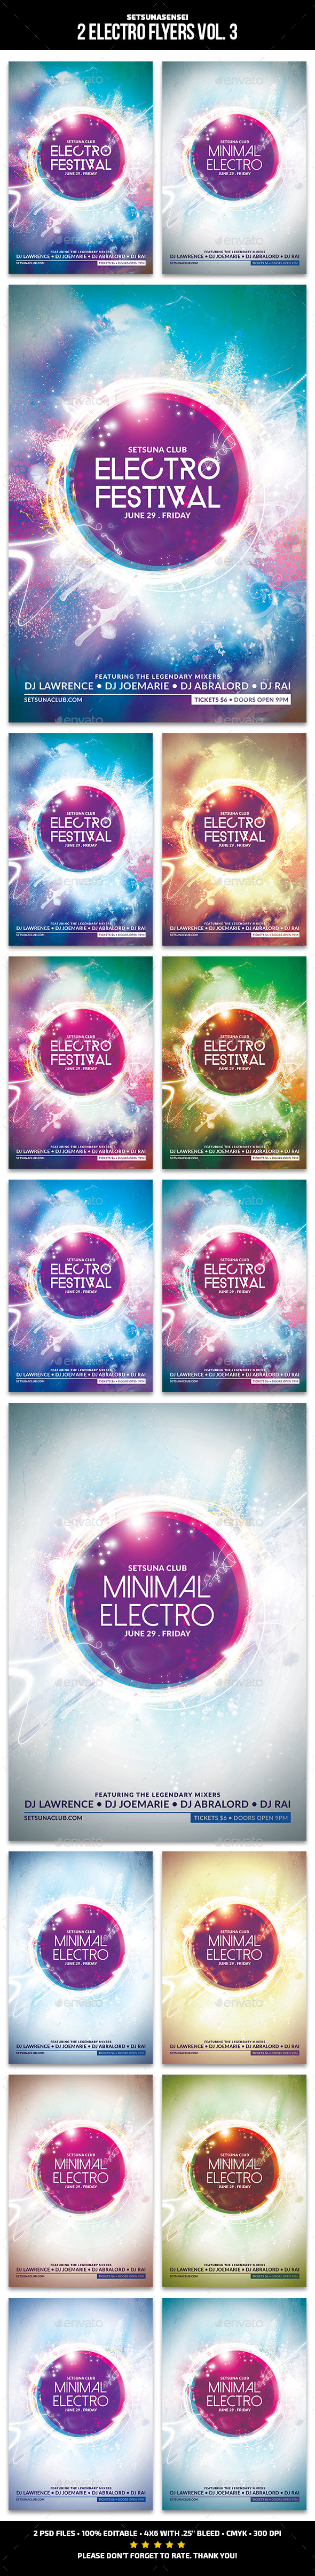 GraphicRiver 2 Electro Flyers Vol 3 11886522